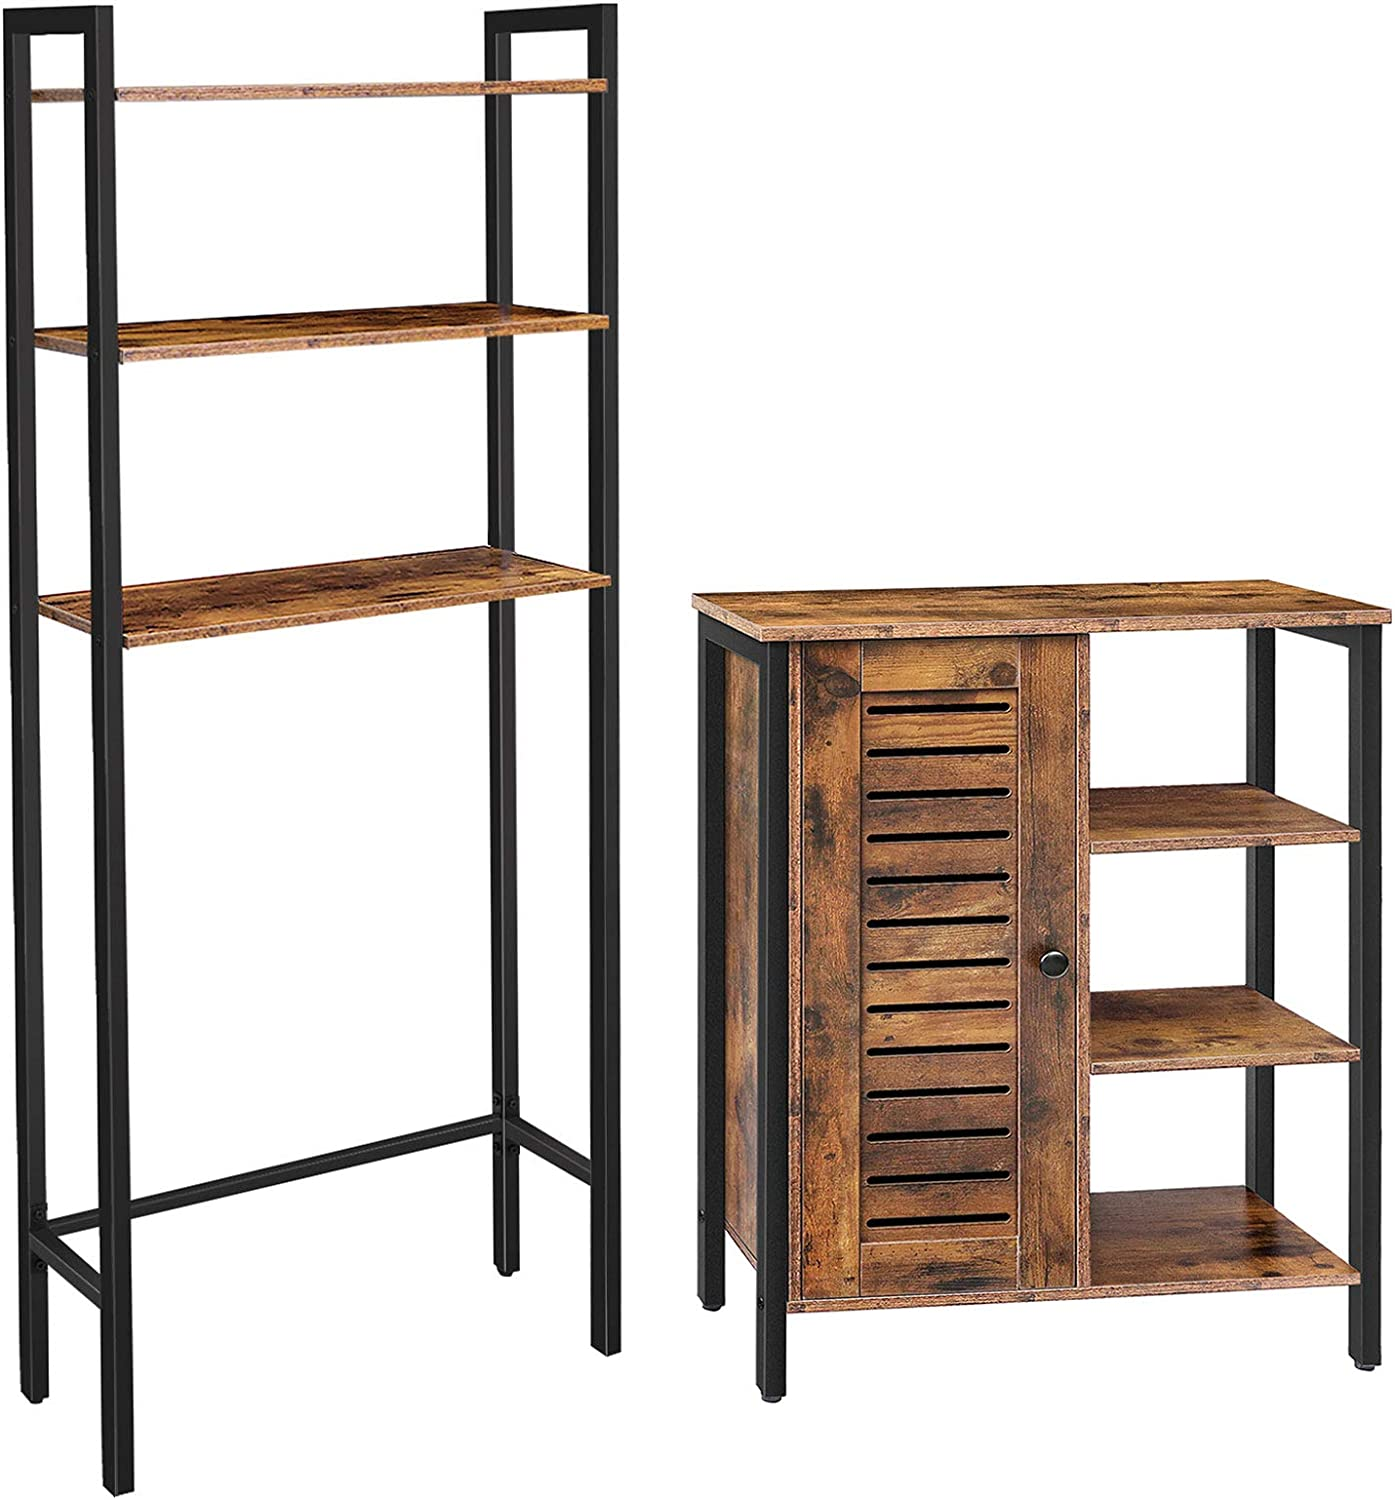 2 Hidden Adjustable Shelves 3 Open Shelves Side Cabinet 3-Tier Over-The-Toilet Cabinet Bathroom Space Saver with Multi-Functional,Rustic Brown HOOBRO Toilet Storage Rack and Storage Cabinet Bundle